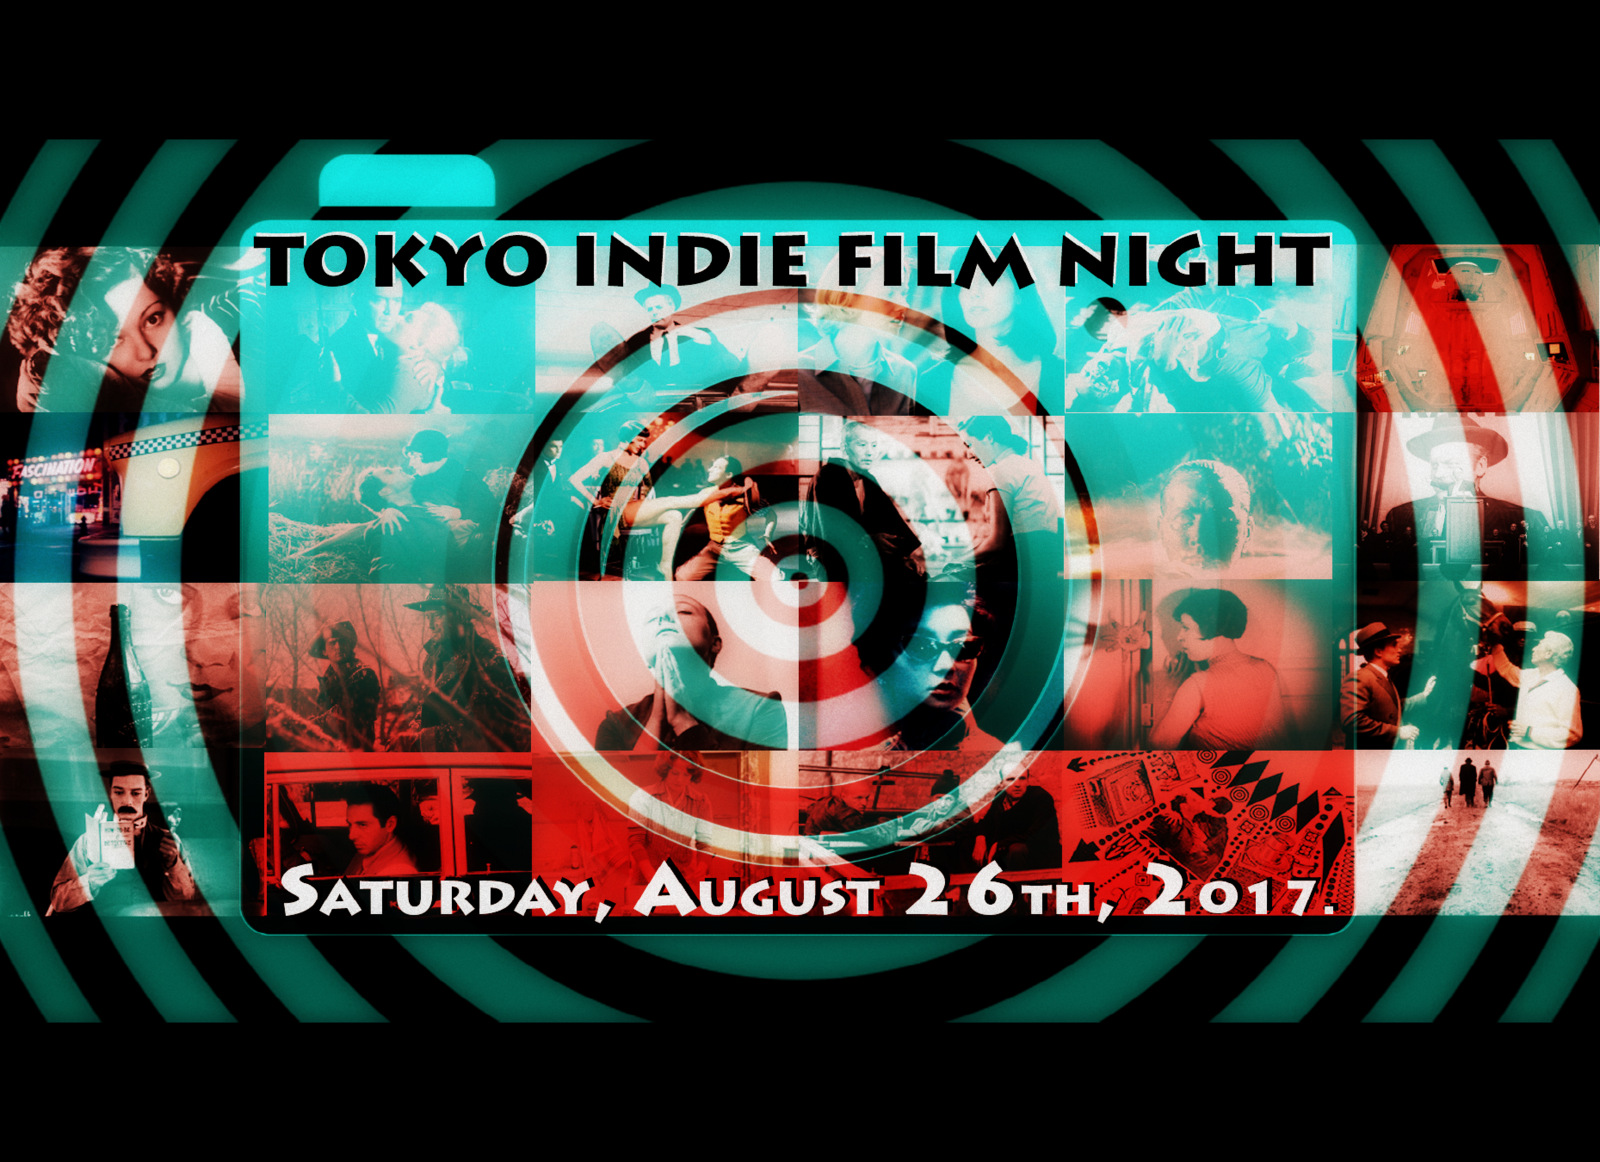 Tokyo Indie Film Night (promotional poster)